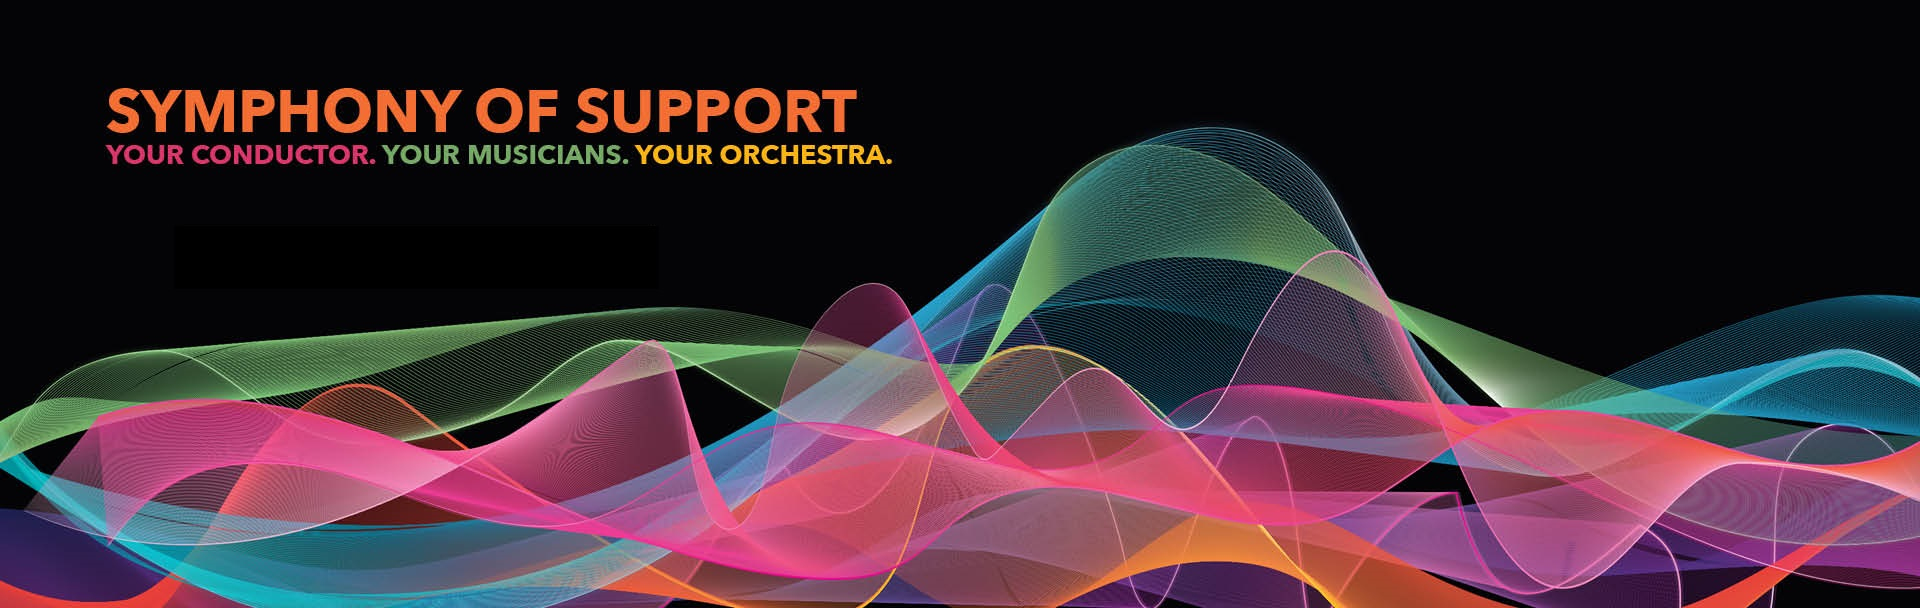 Symphony of Support: Your Conductor, Your Musicians, Your Orchestra